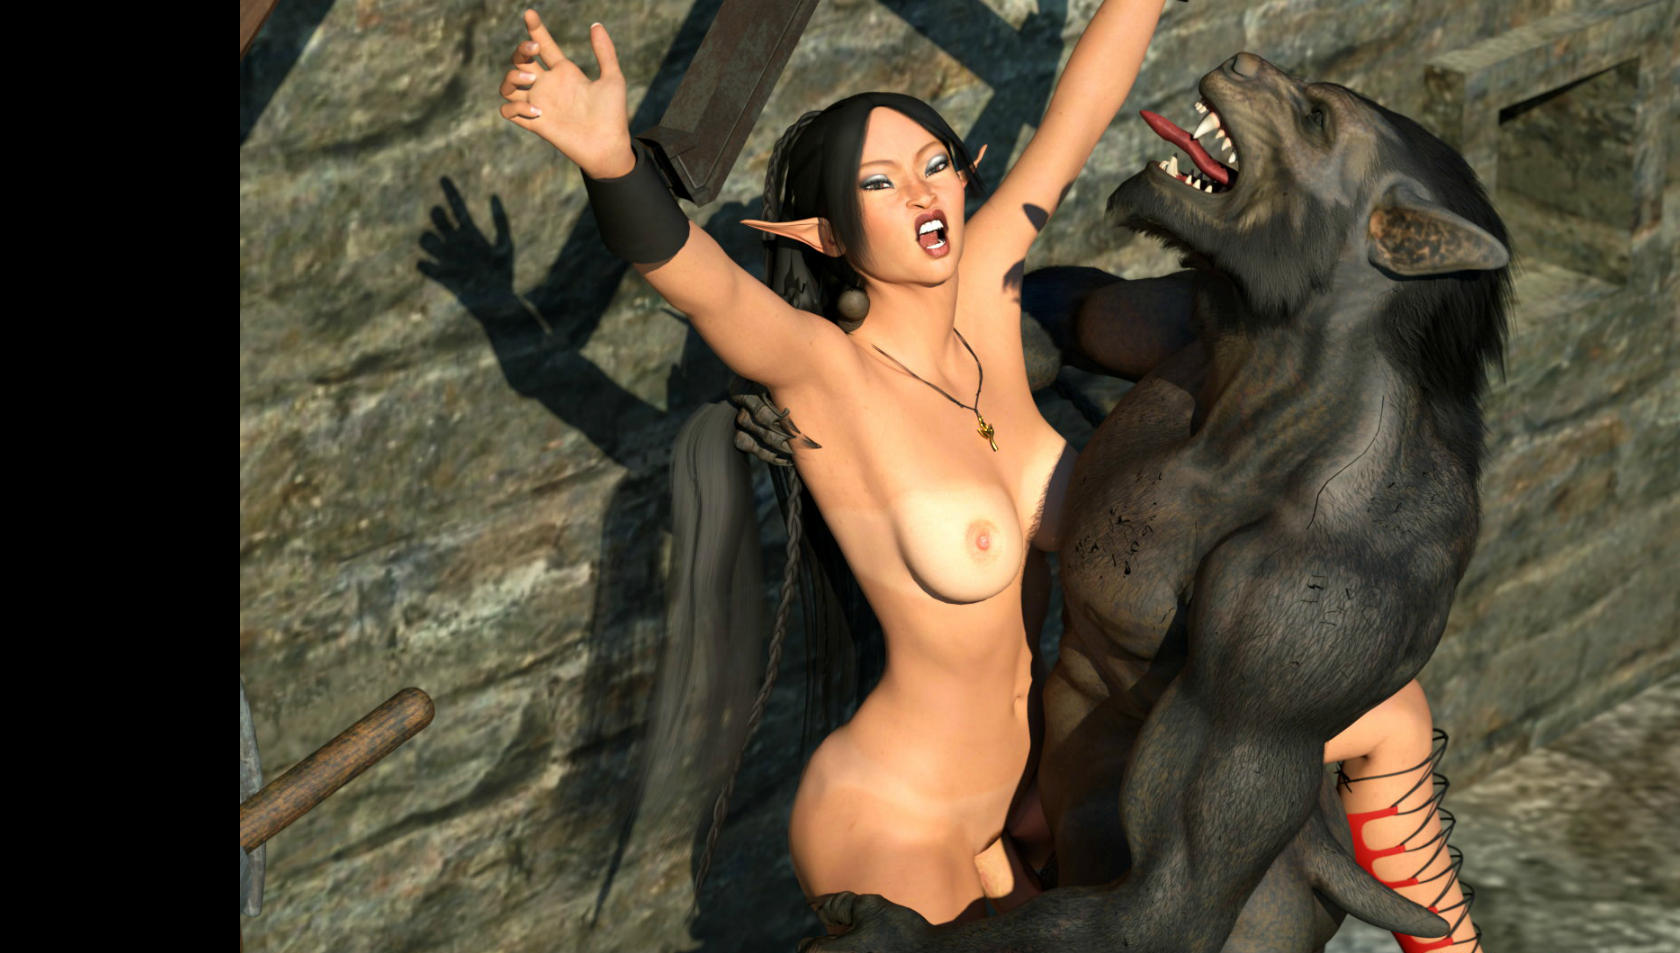 Fucking werwolf nude photo